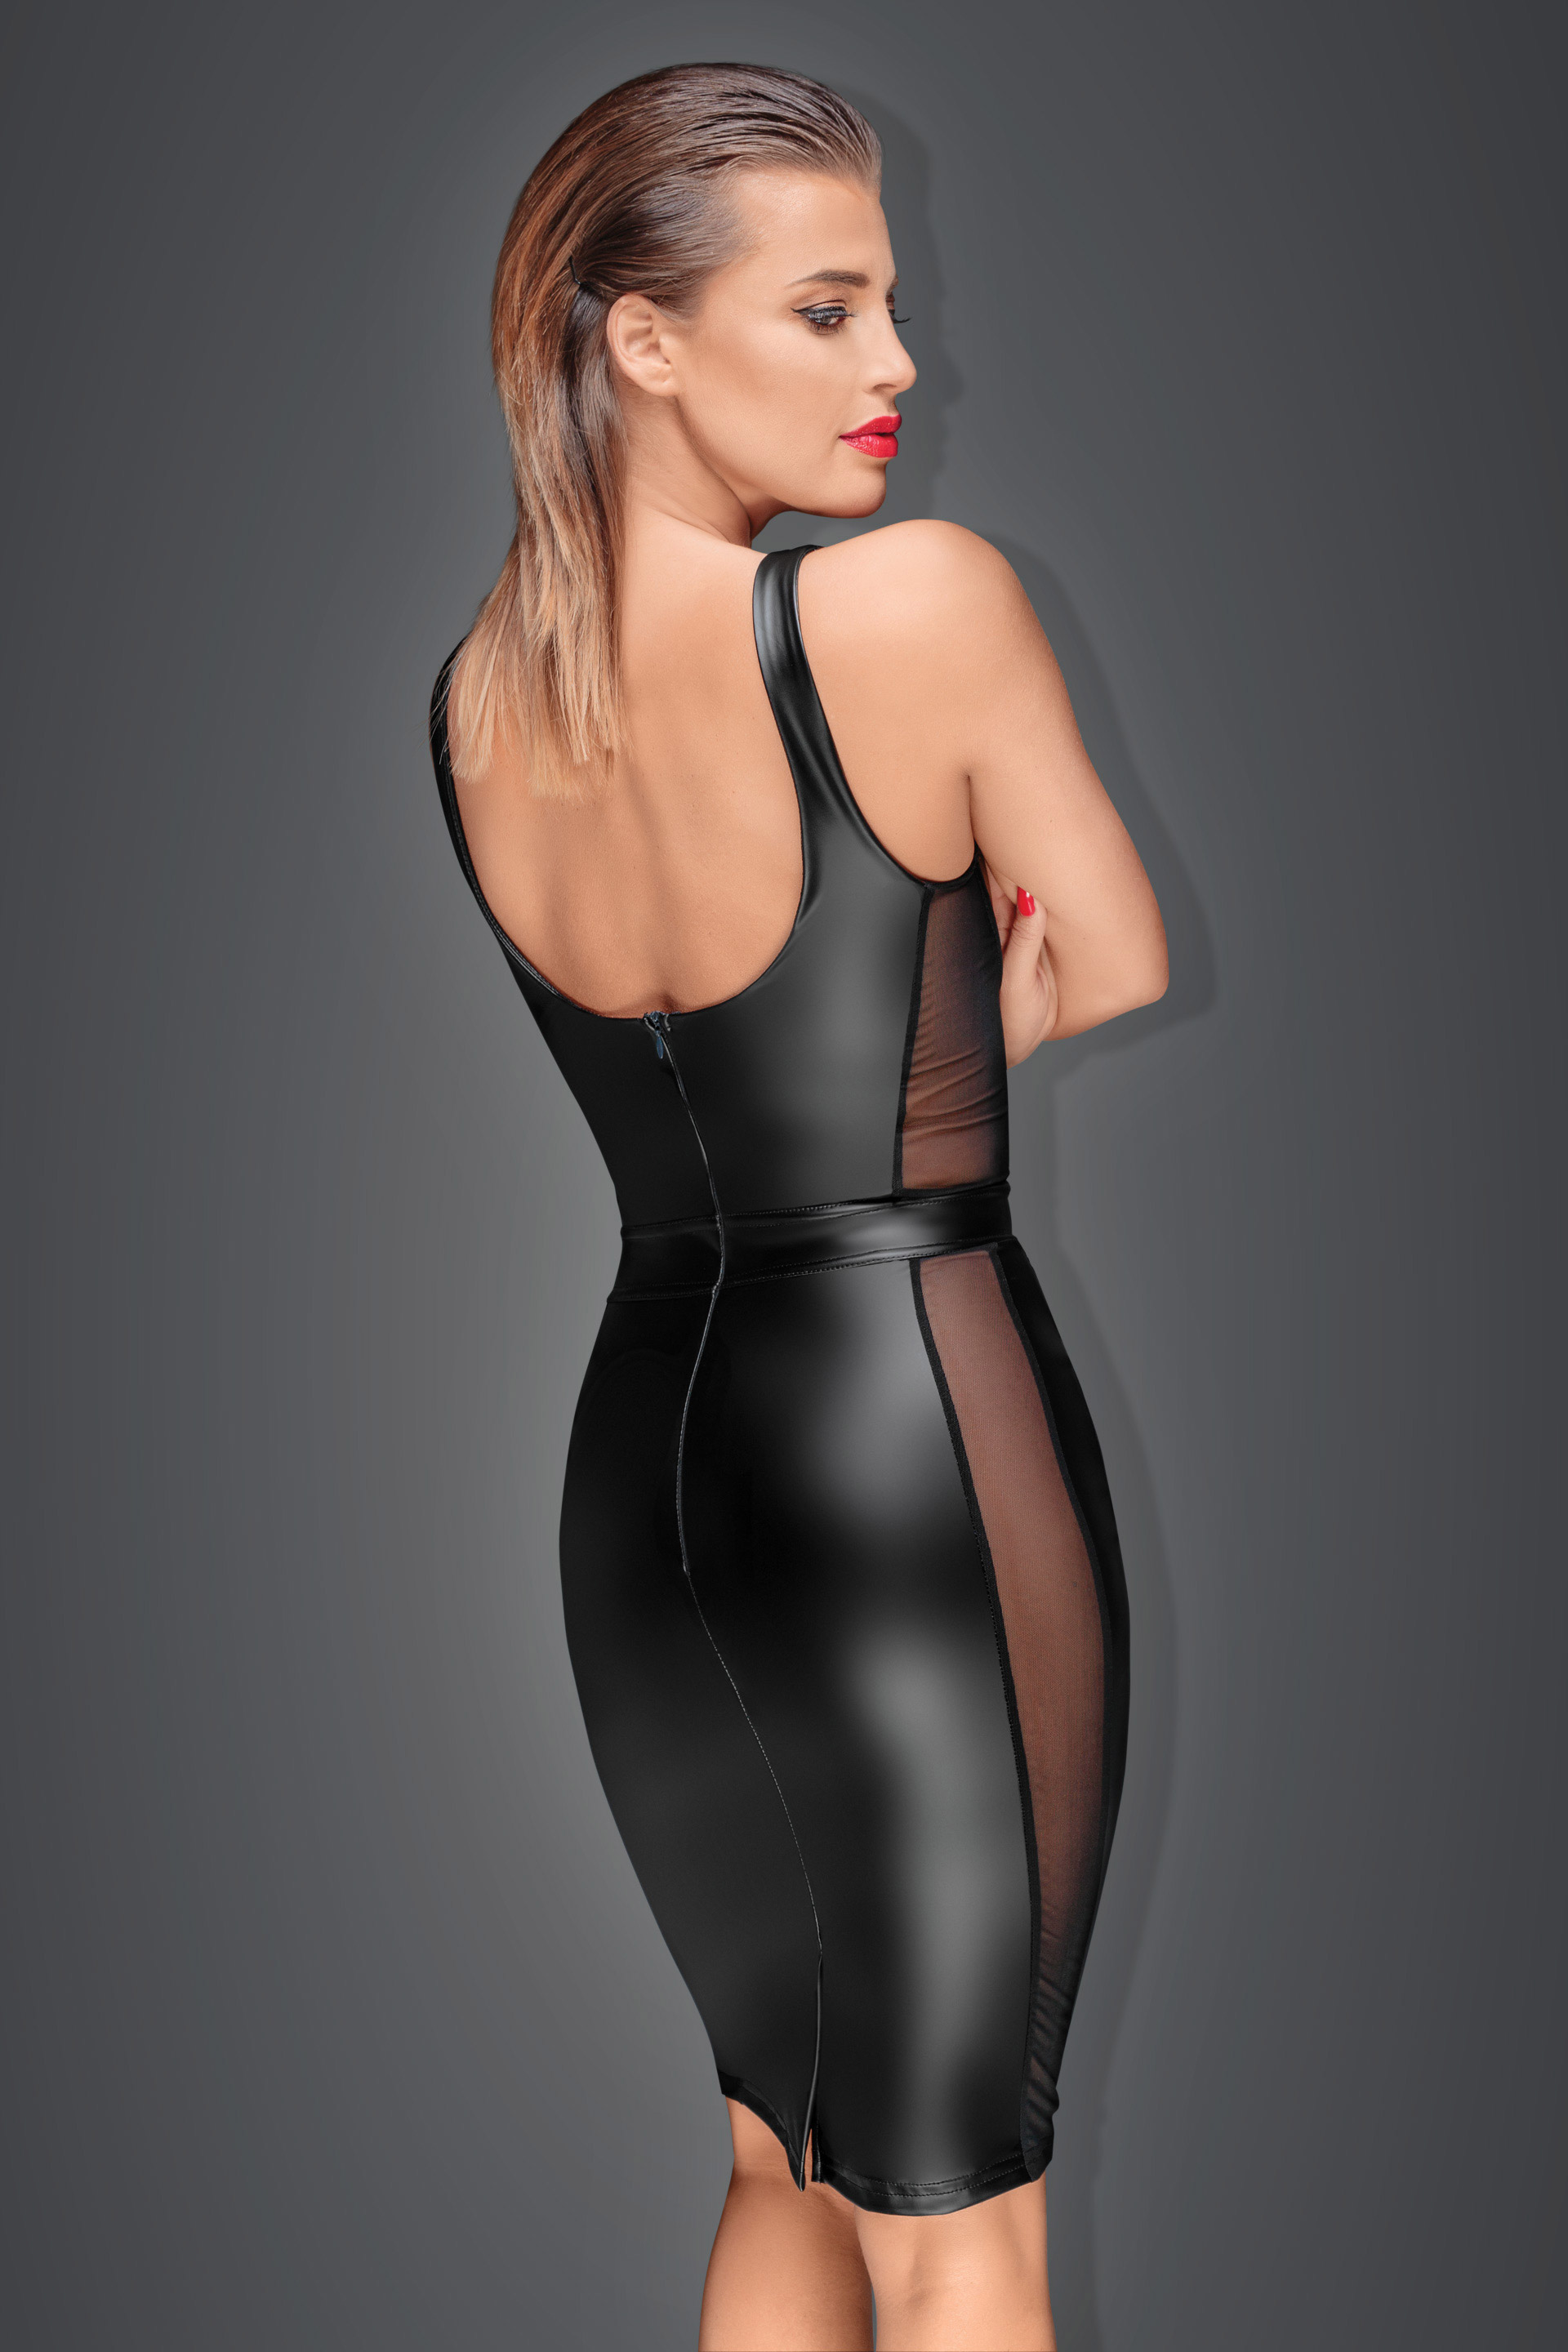 F151 Powerwetlook pencil dress with see-through and underwired bra